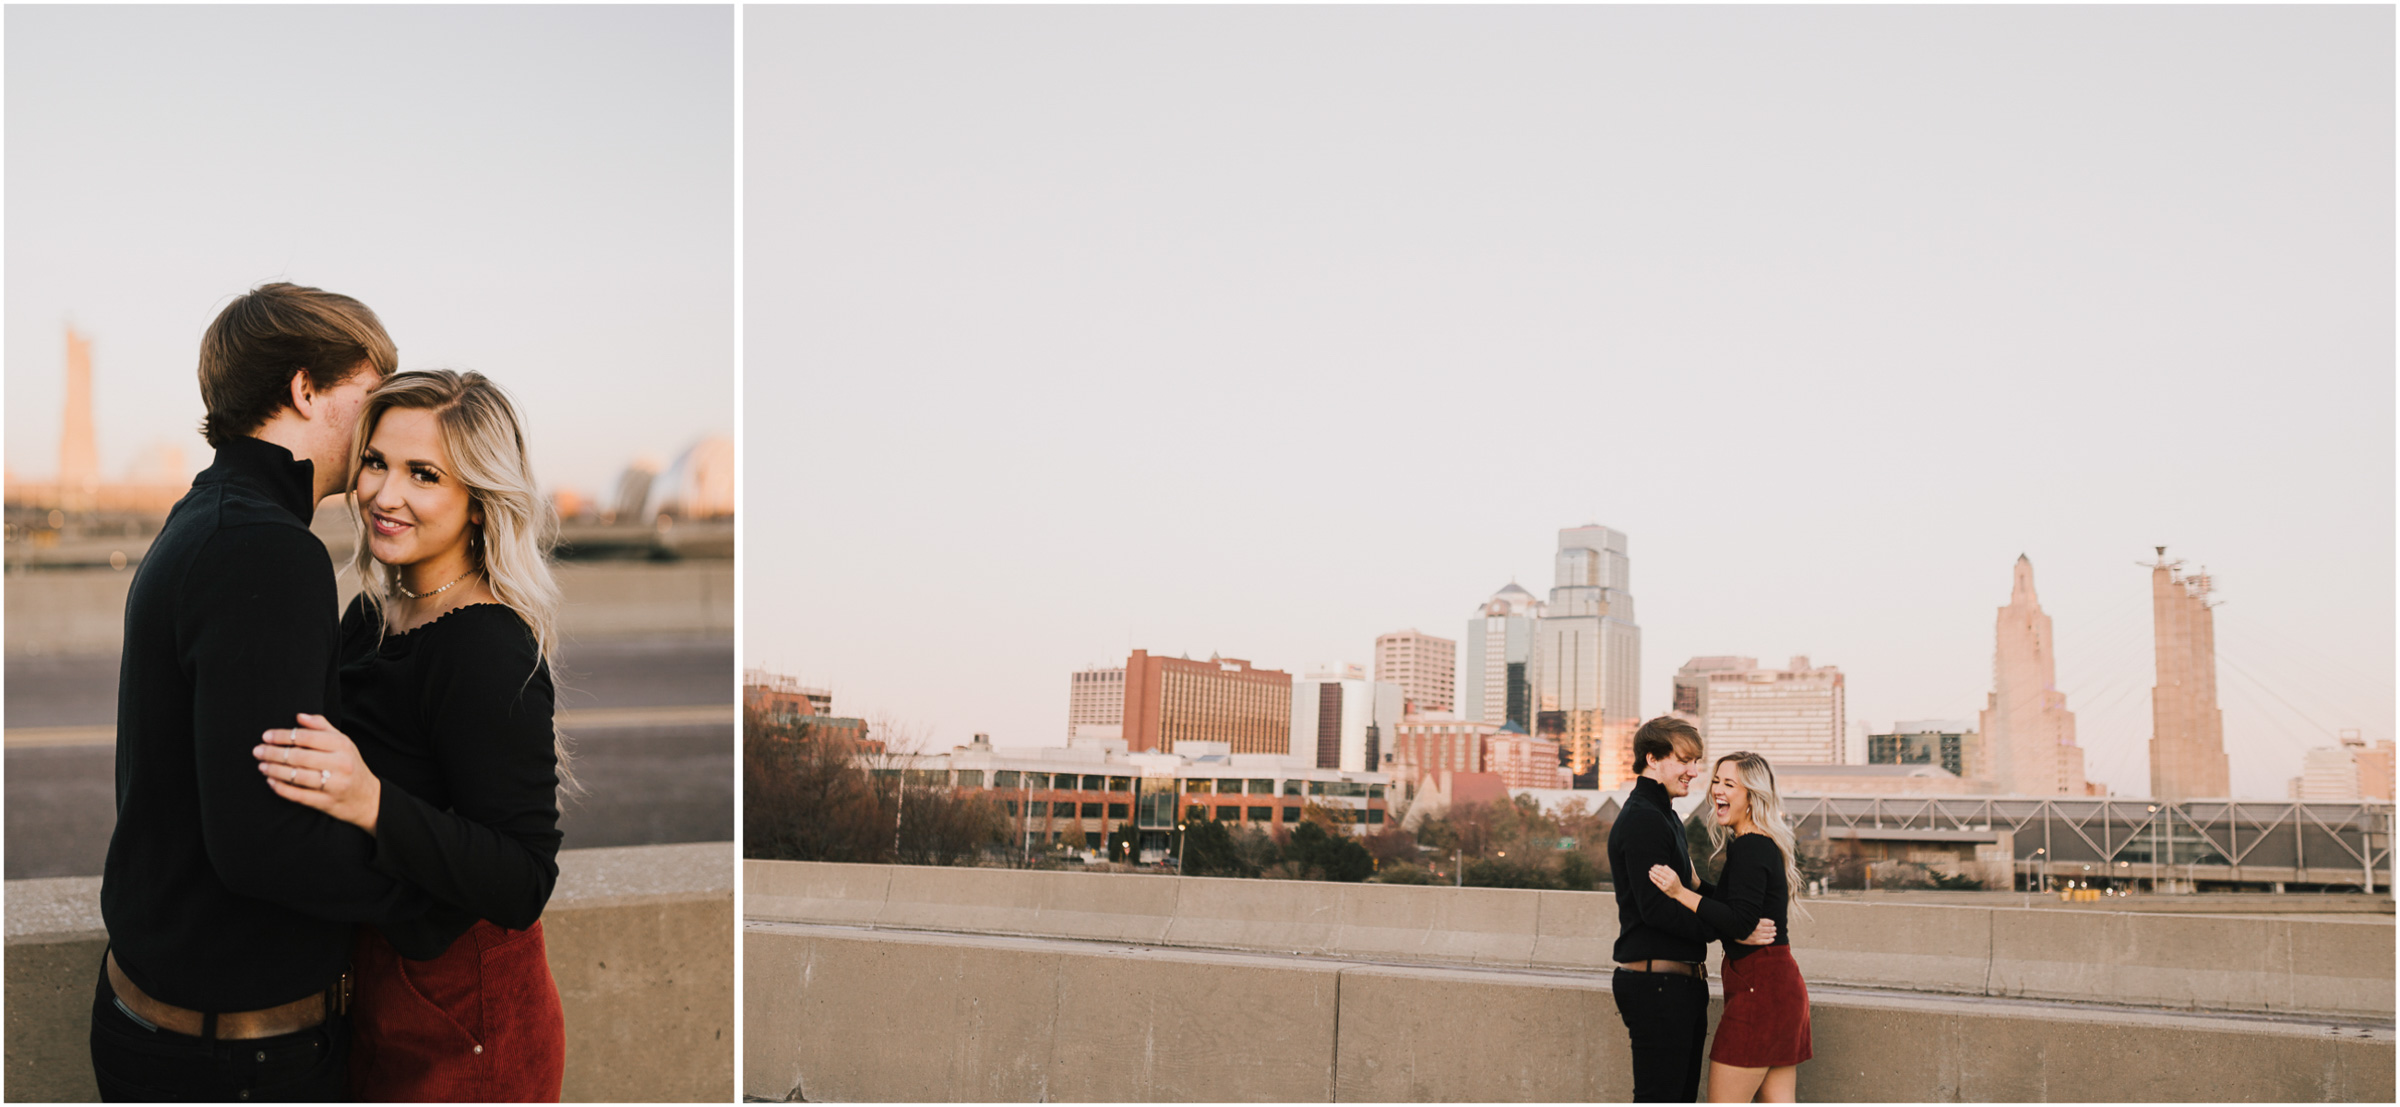 alyssa barletter photography downtown kansas city missouri engagement photos fall winter kcmo-14.jpg